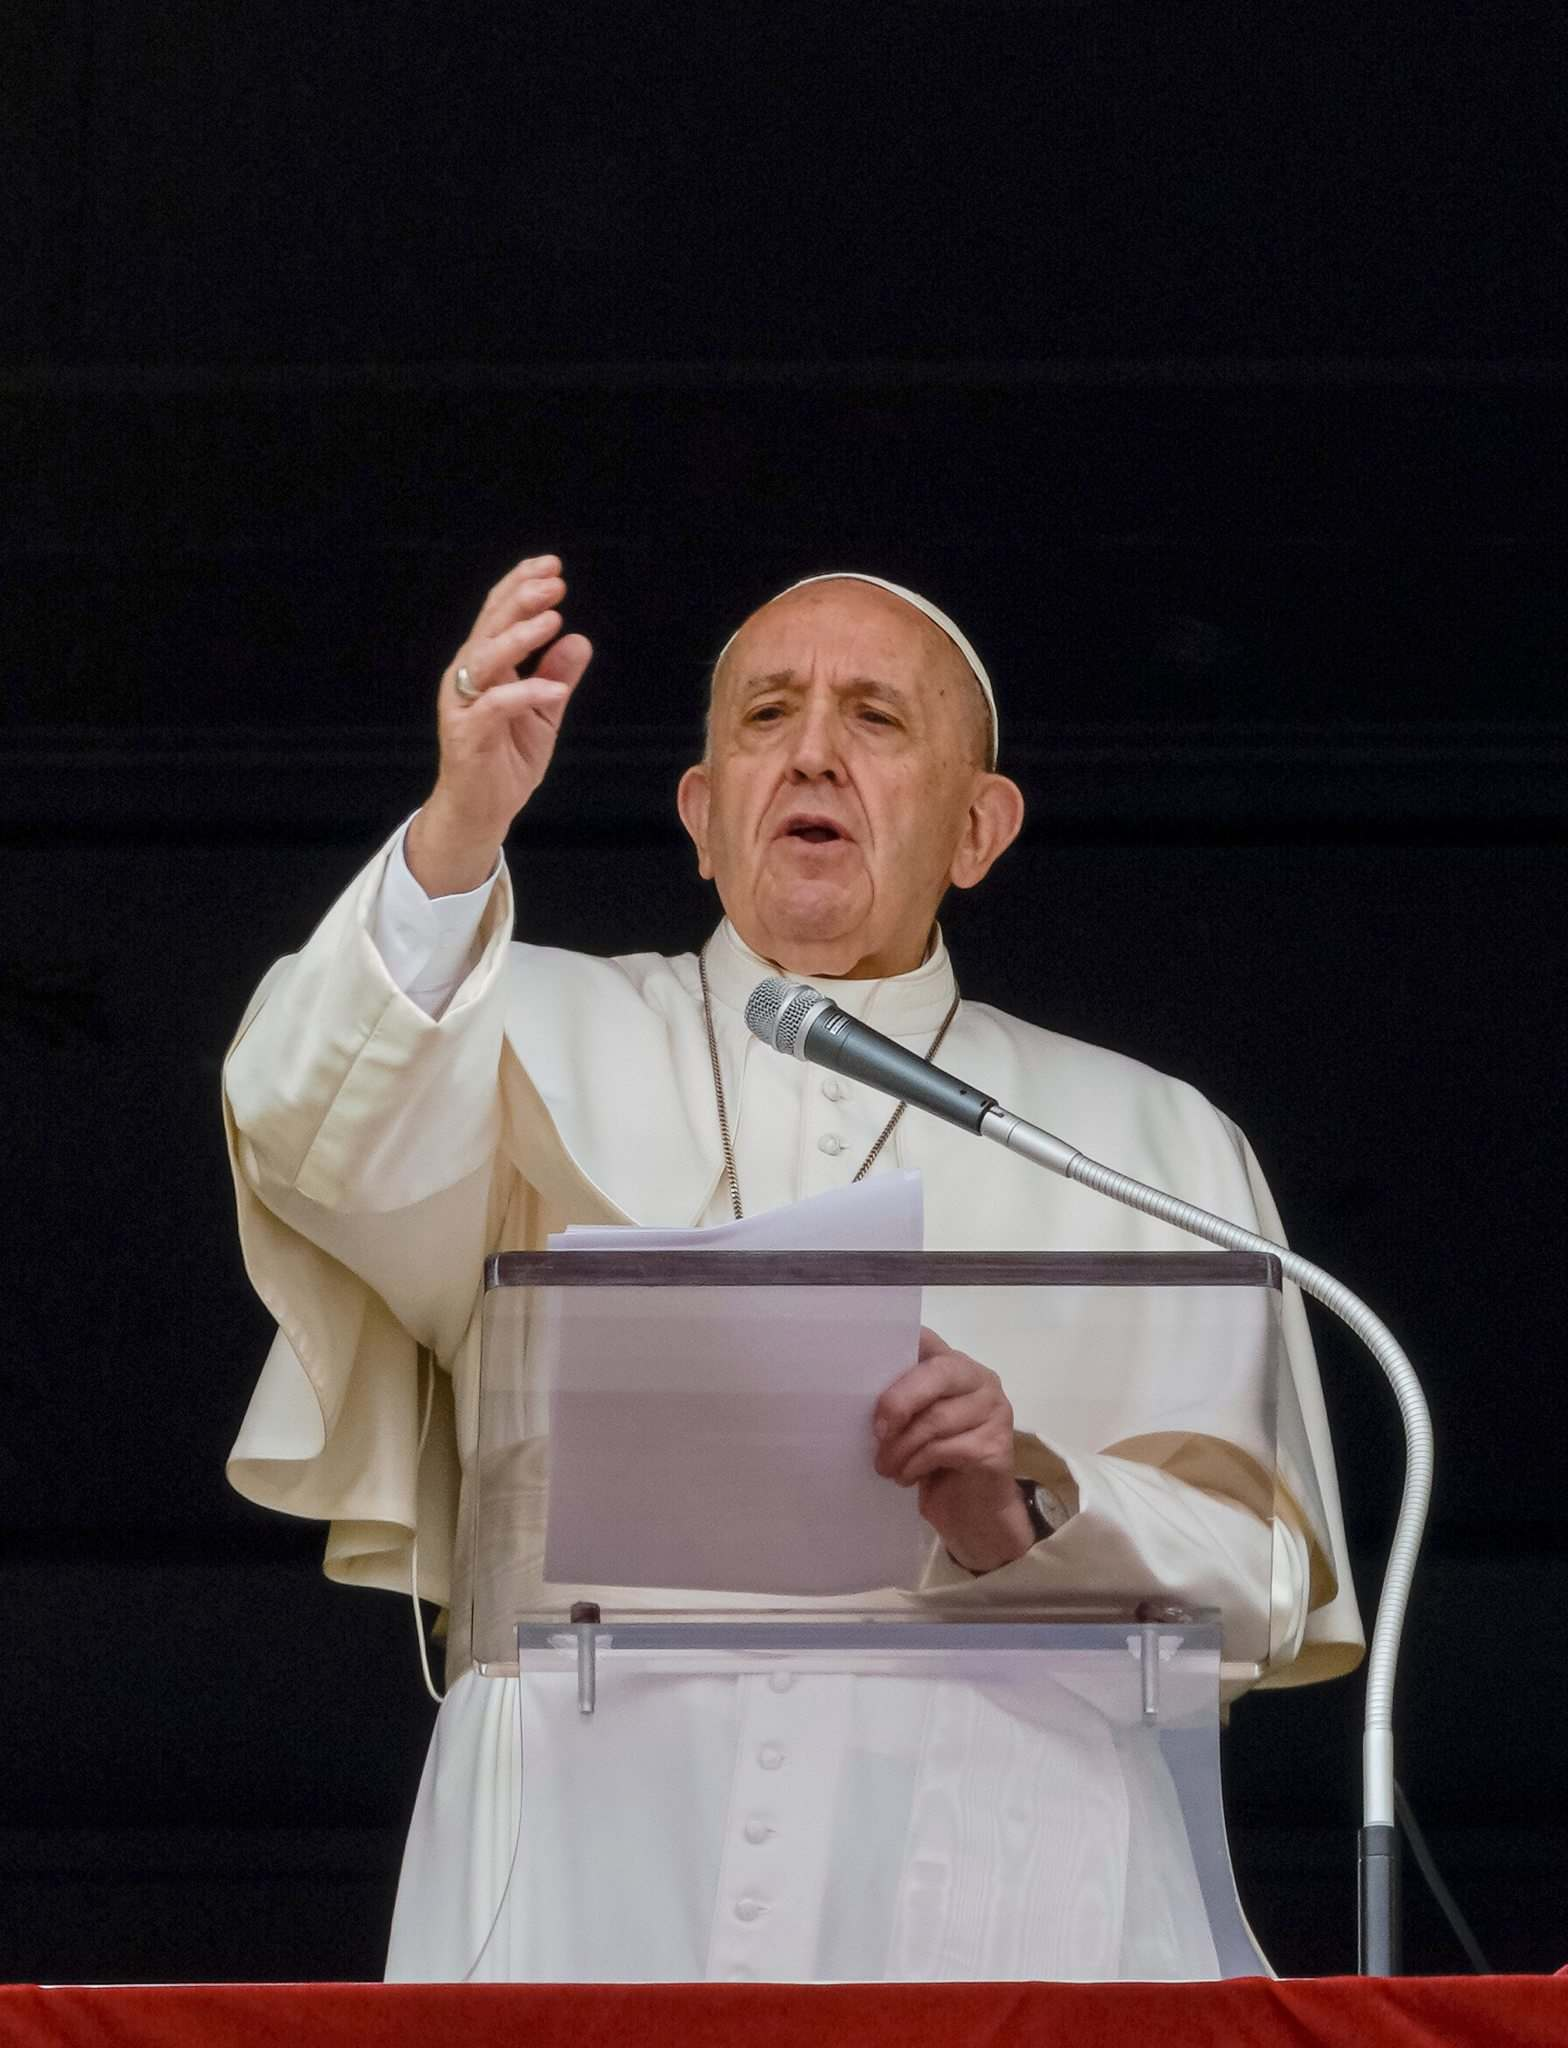 There has been no apology from Pope Francis. (Domenico Stinellis / The Associated Press files)